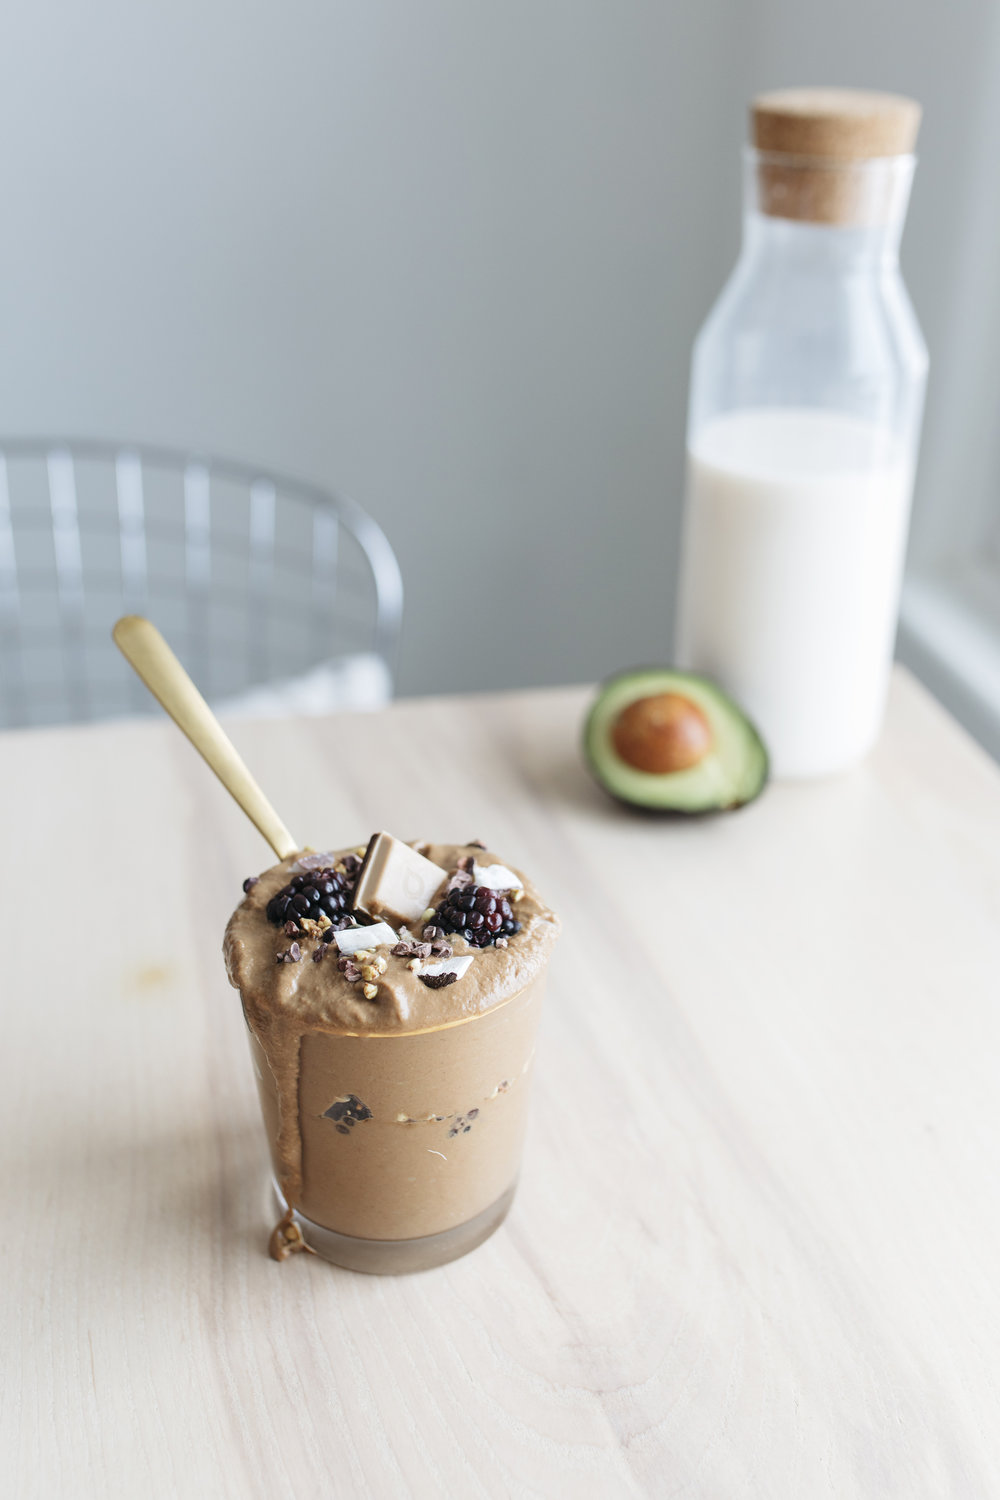 Avocados make for great smoothies to motivate your Monday. find the recipe on this blog